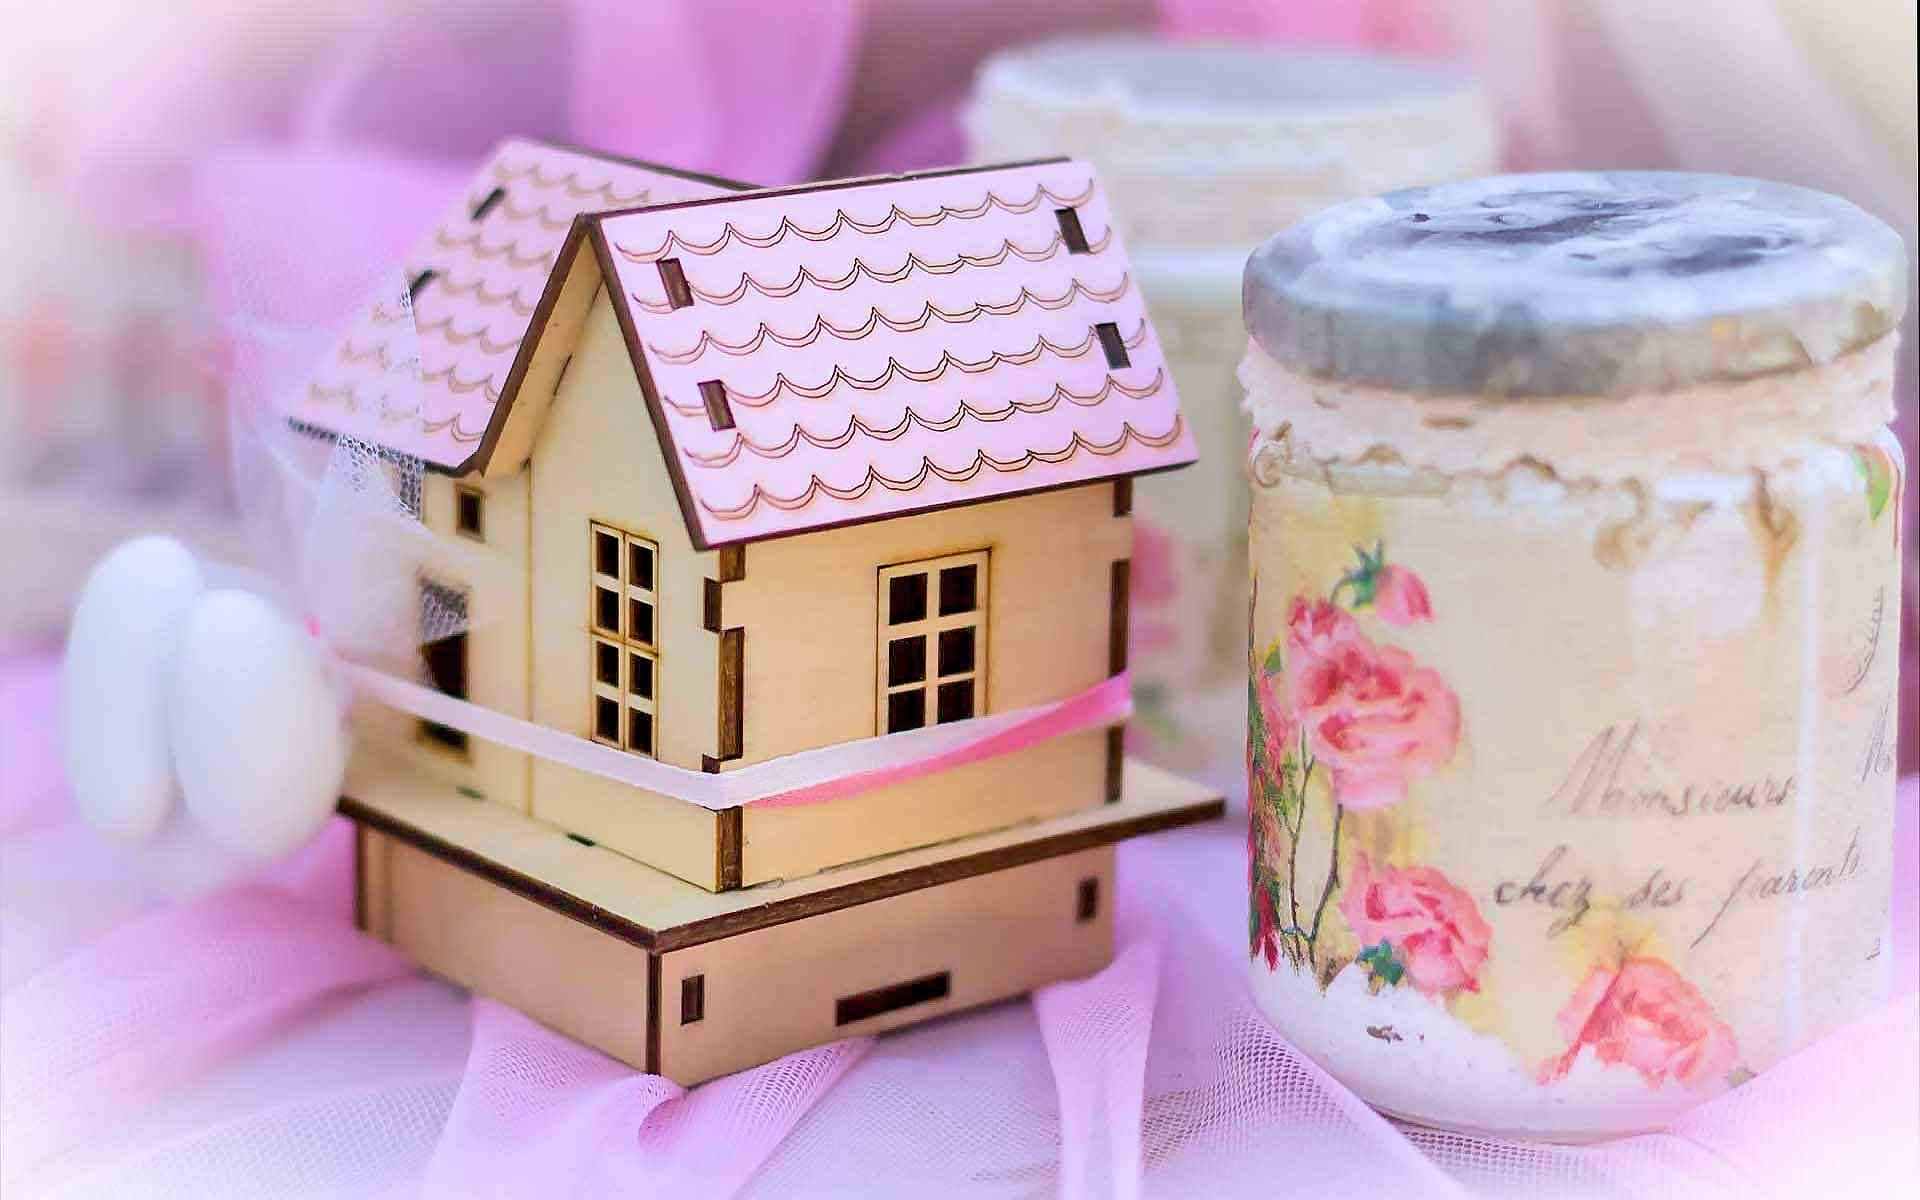 Wooden-House-And-Candle-Baptismal-Favour-In-Shades-Of-Blush